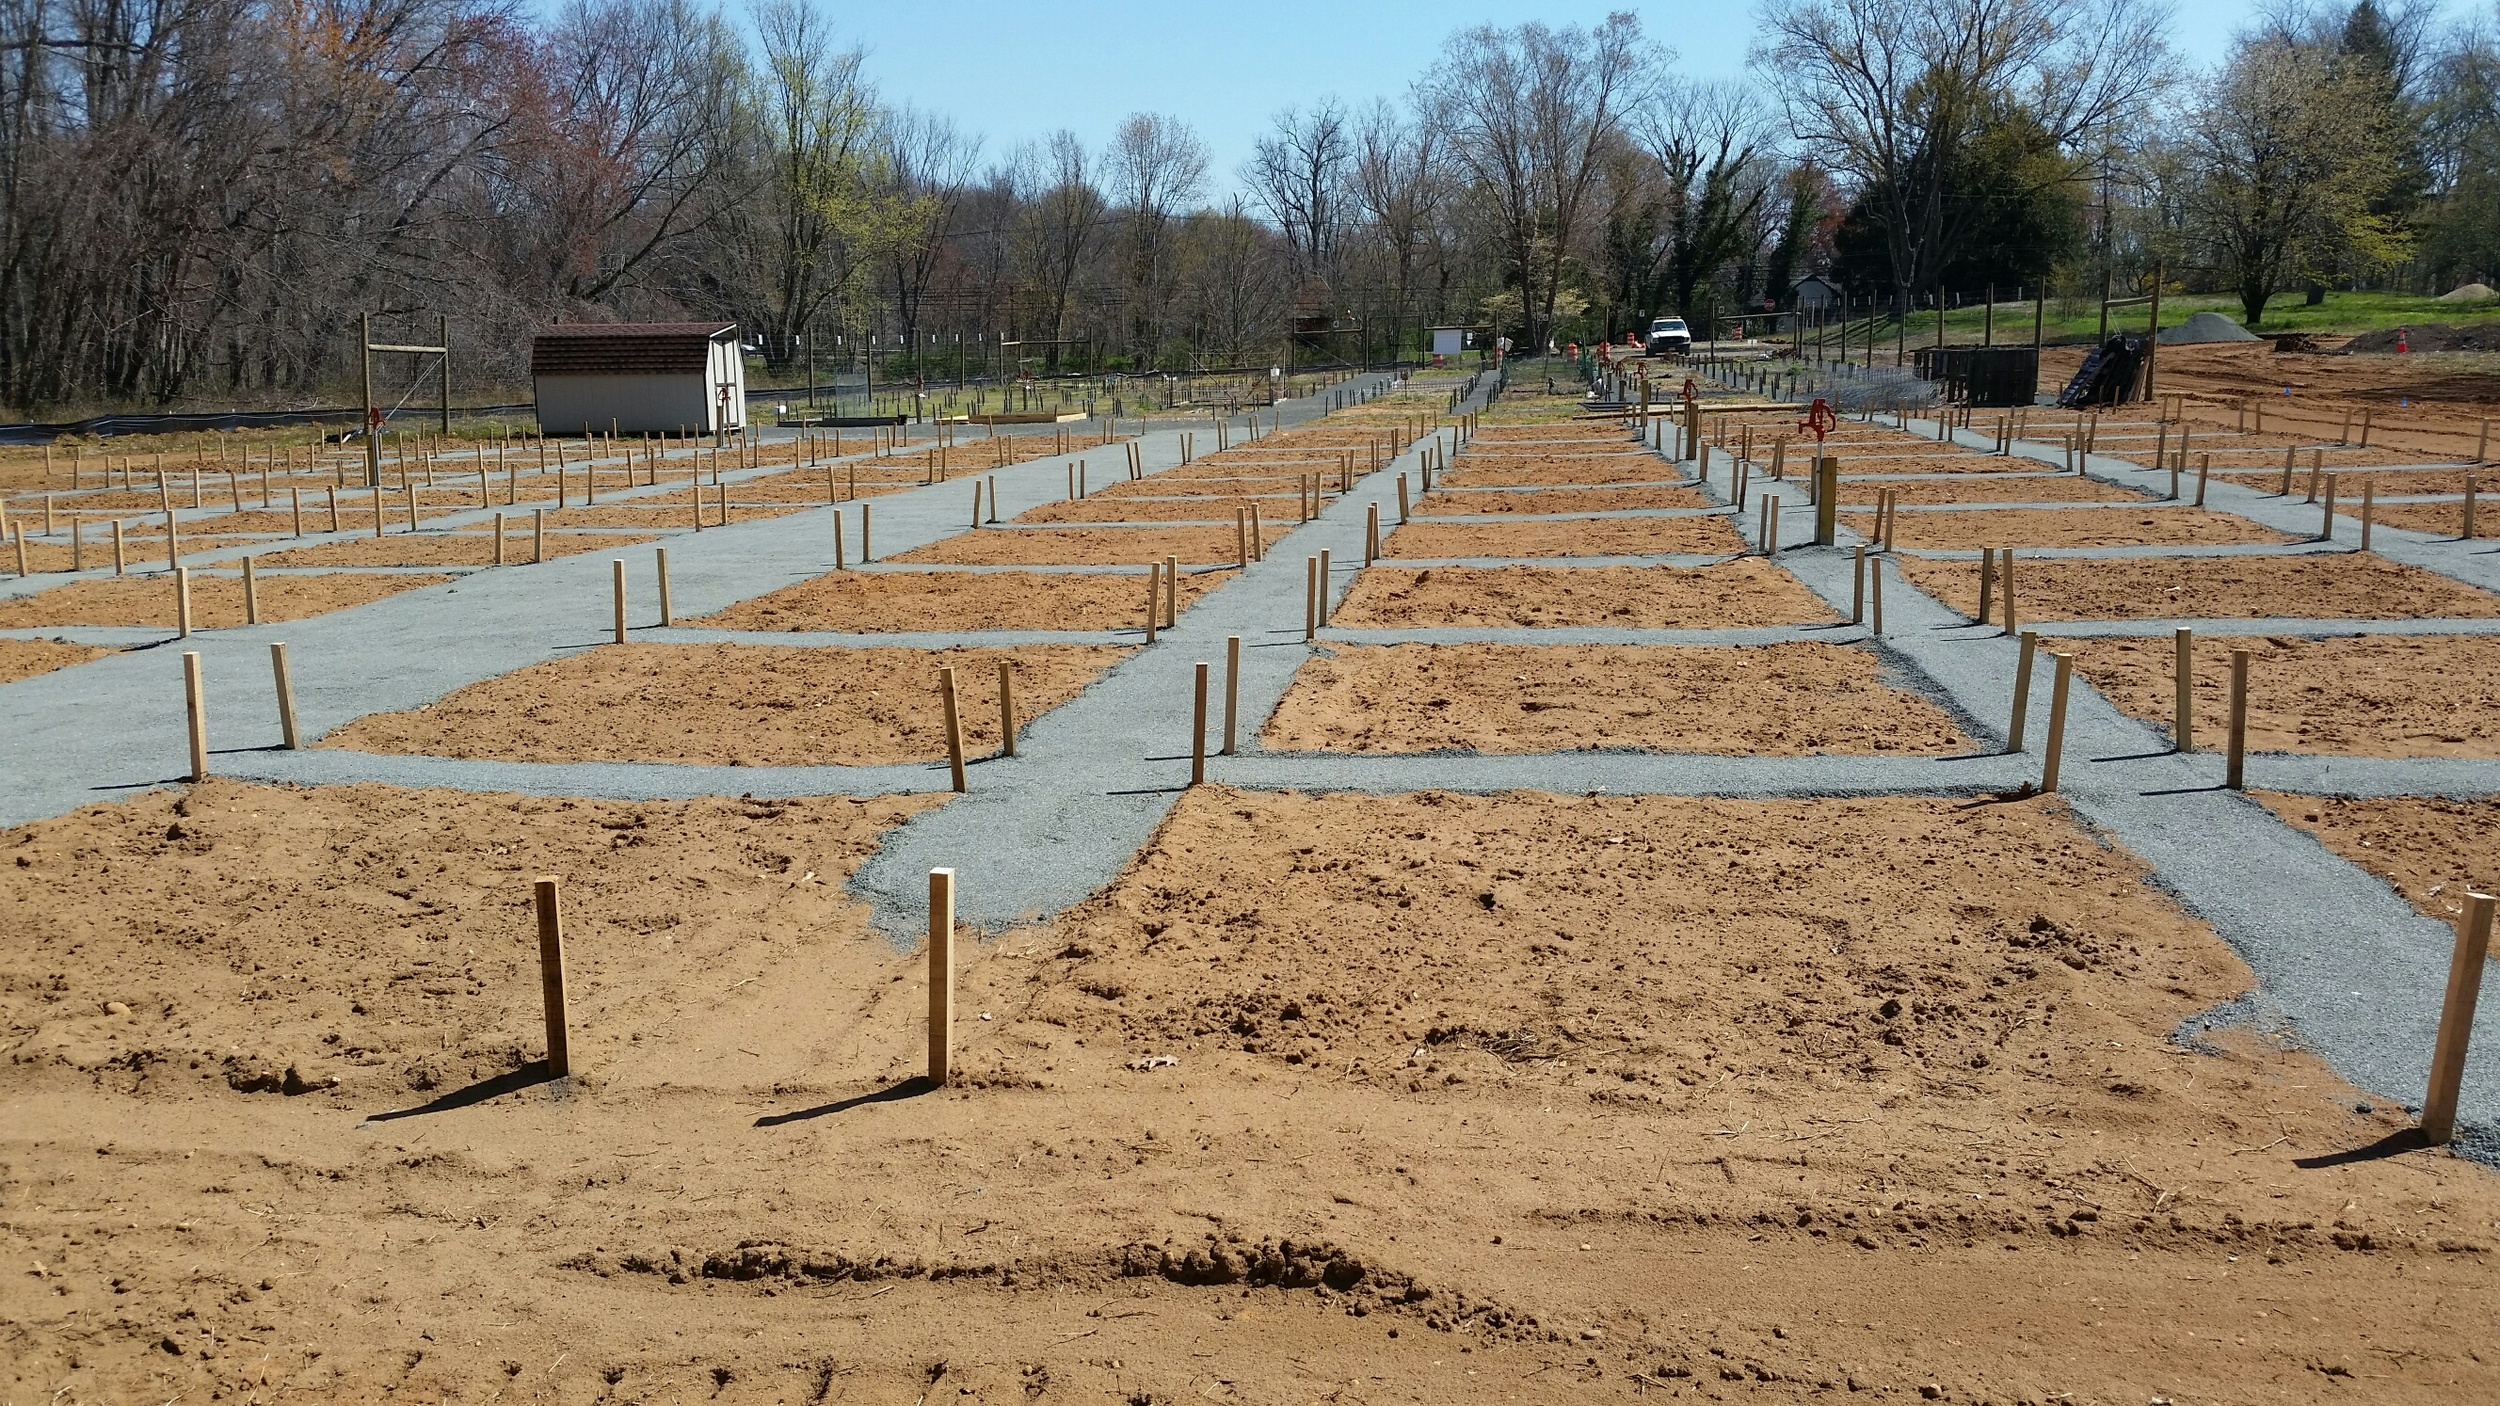 As shown in the attached photo, the new 2016 plots have been staked out by M.T.U.D. staff and the Contractor has installed the walking paths. Watch Township news concerning the Opening Day currently scheduled on May 1st.